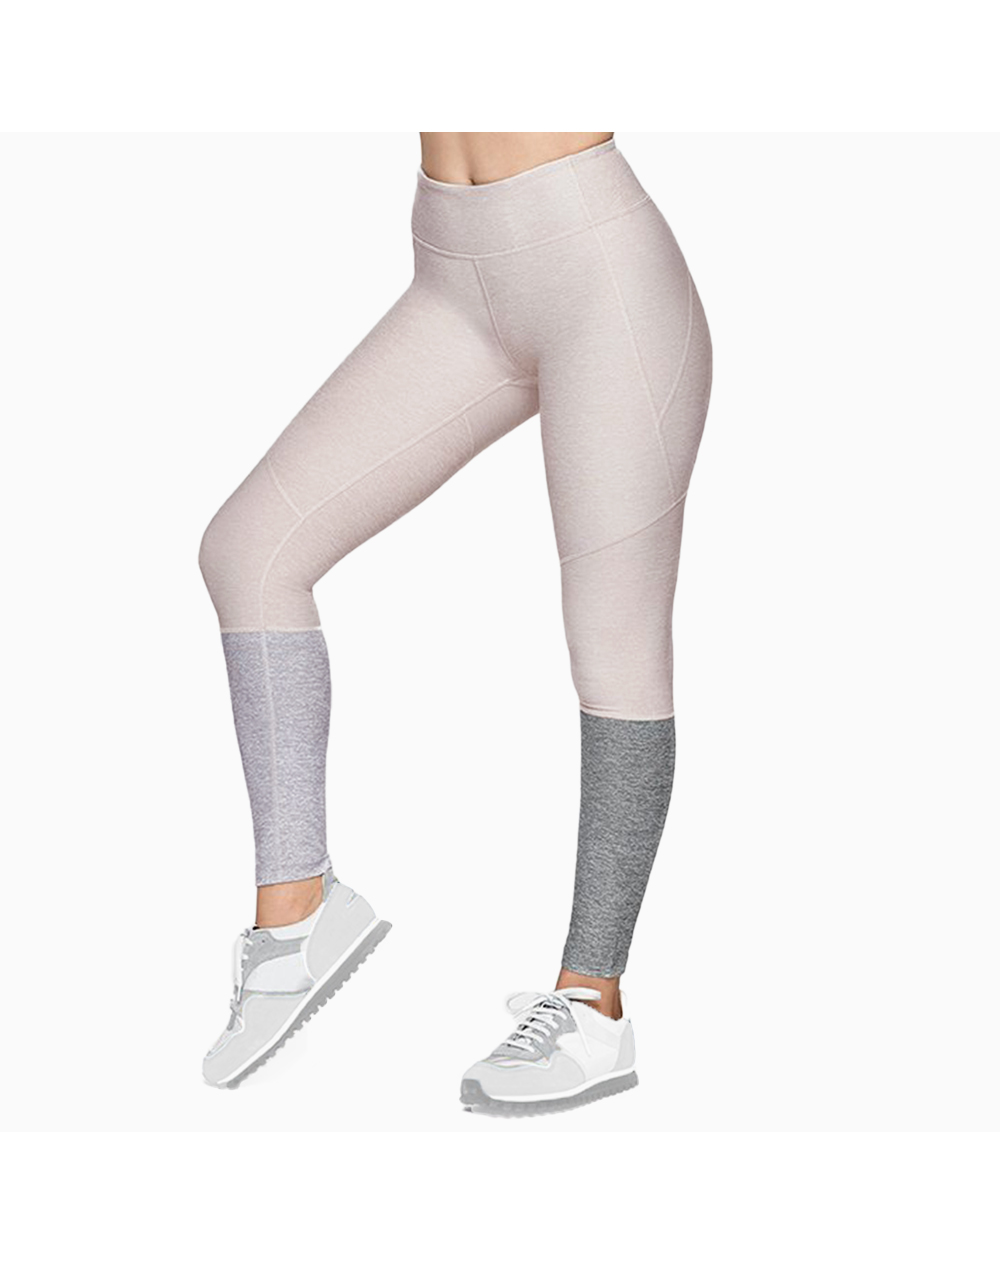 7/8 Dipped Legging in Oatmeal/Dove/Ash by Outdoor Voices |